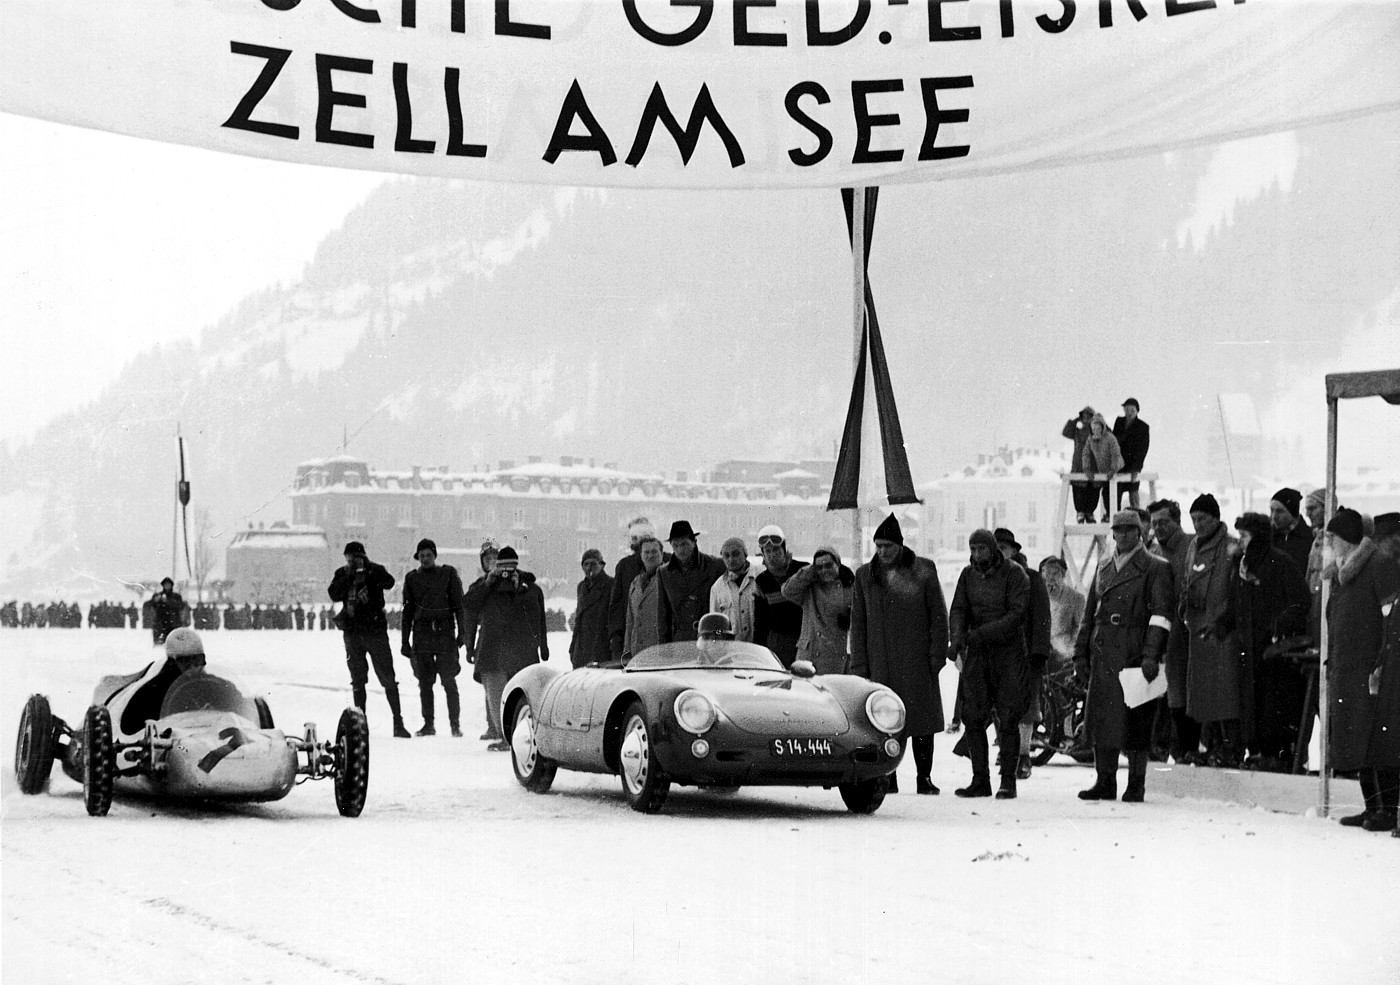 GP Ice Race Zell am See 2019